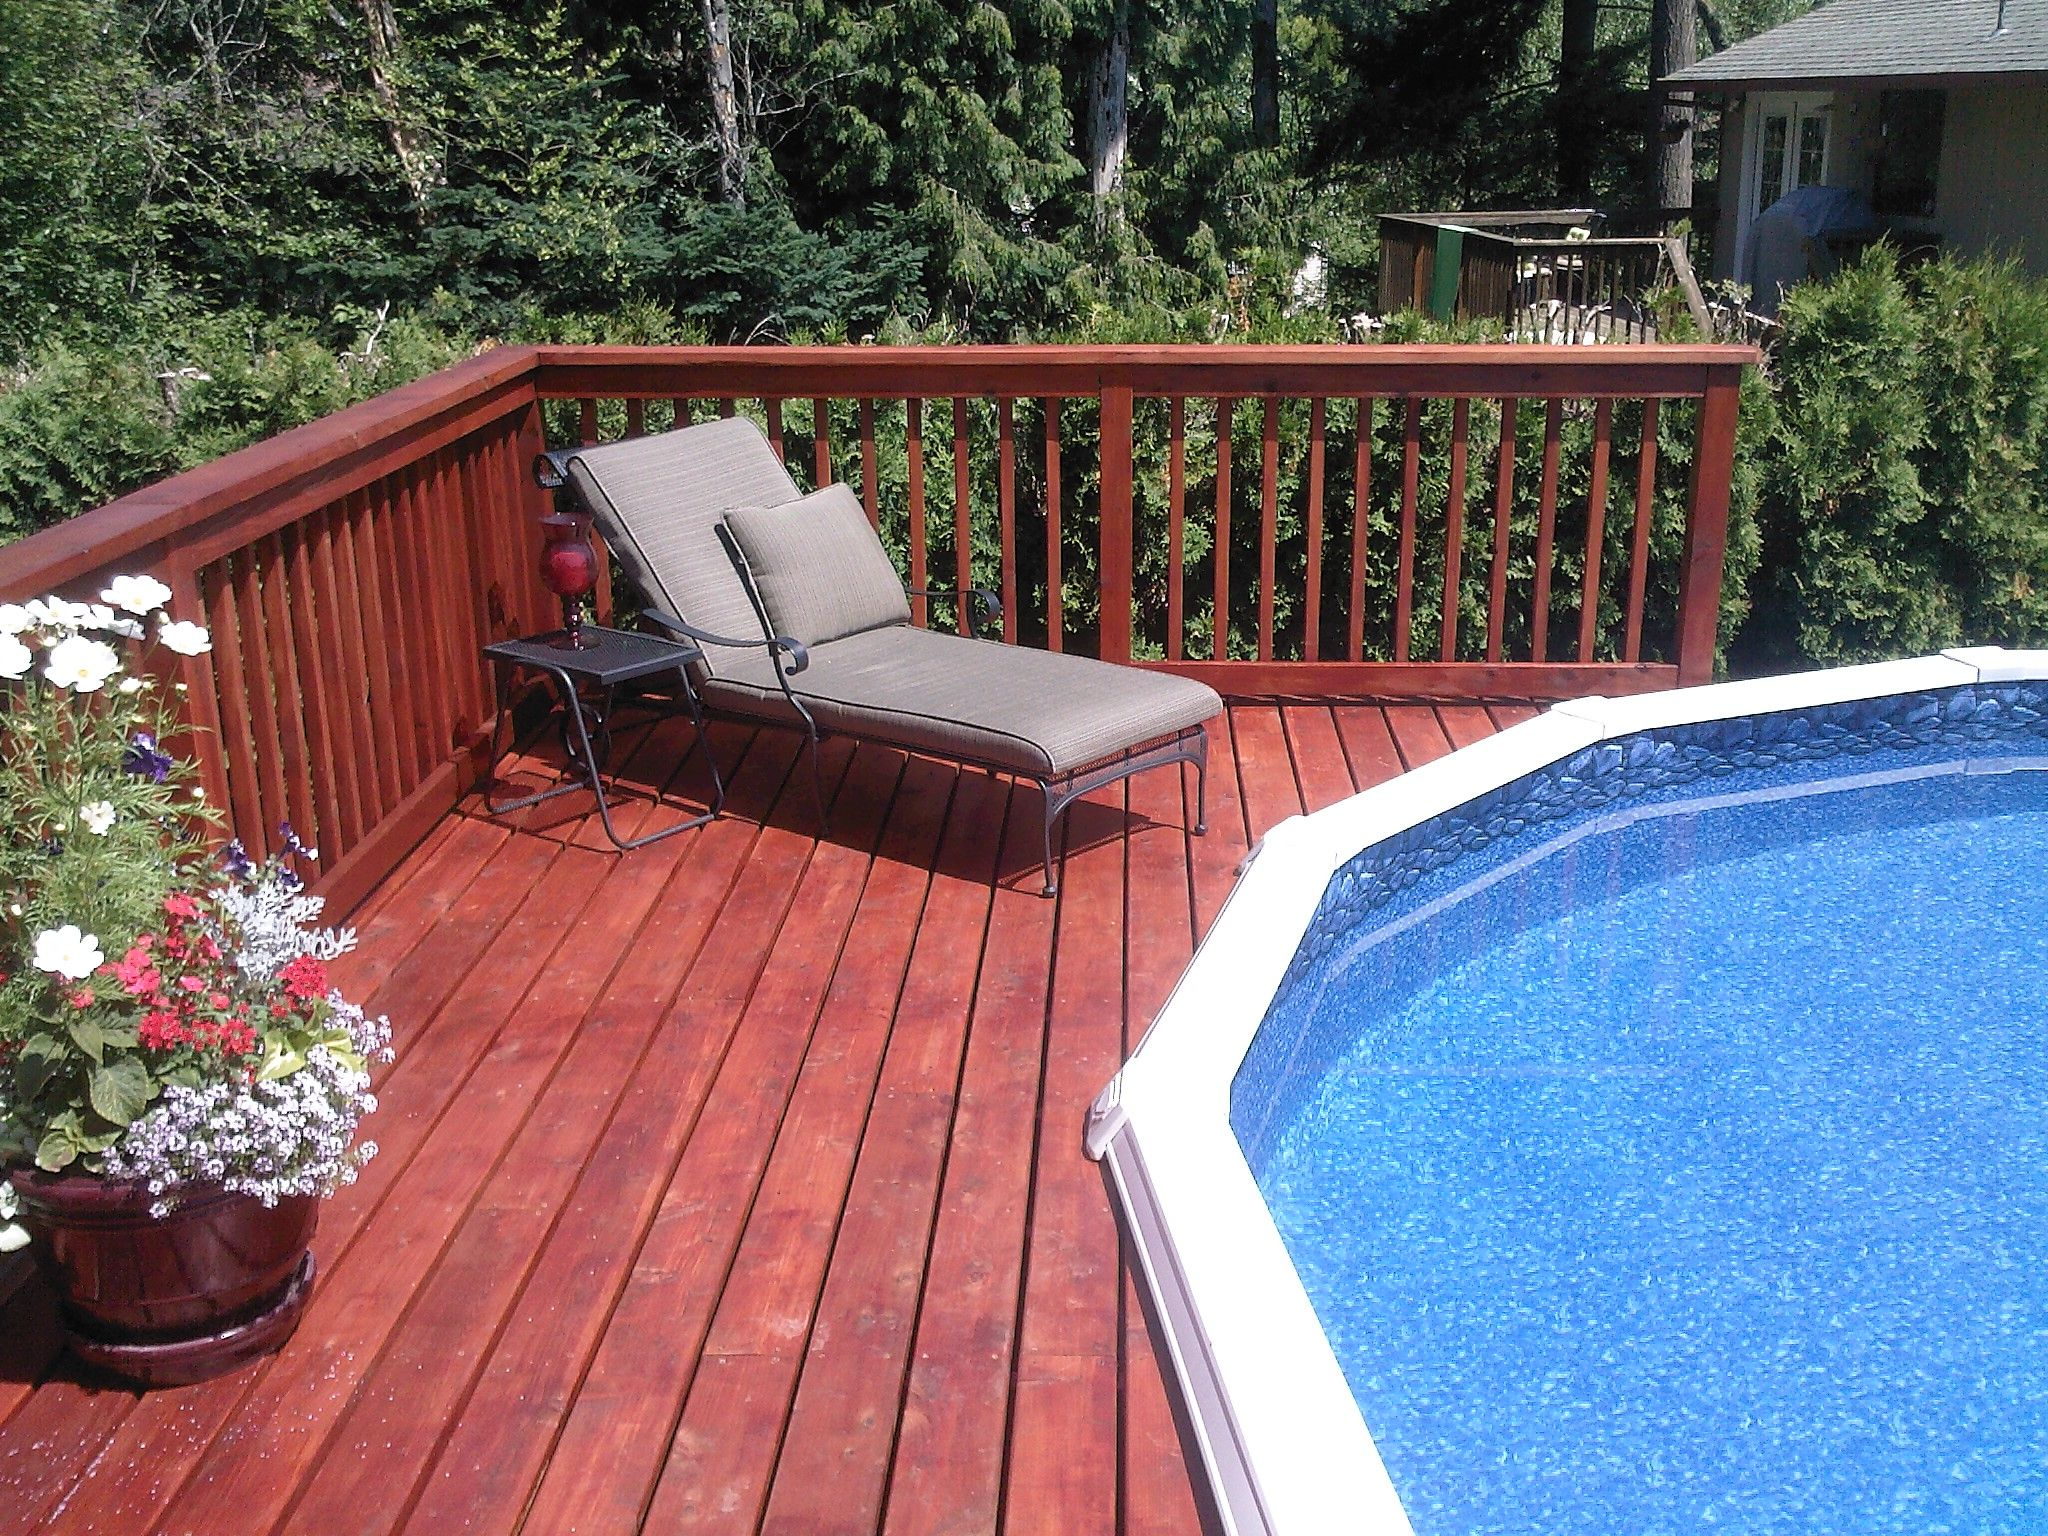 21 attractive wooden deck design of swimming pool - aida homes